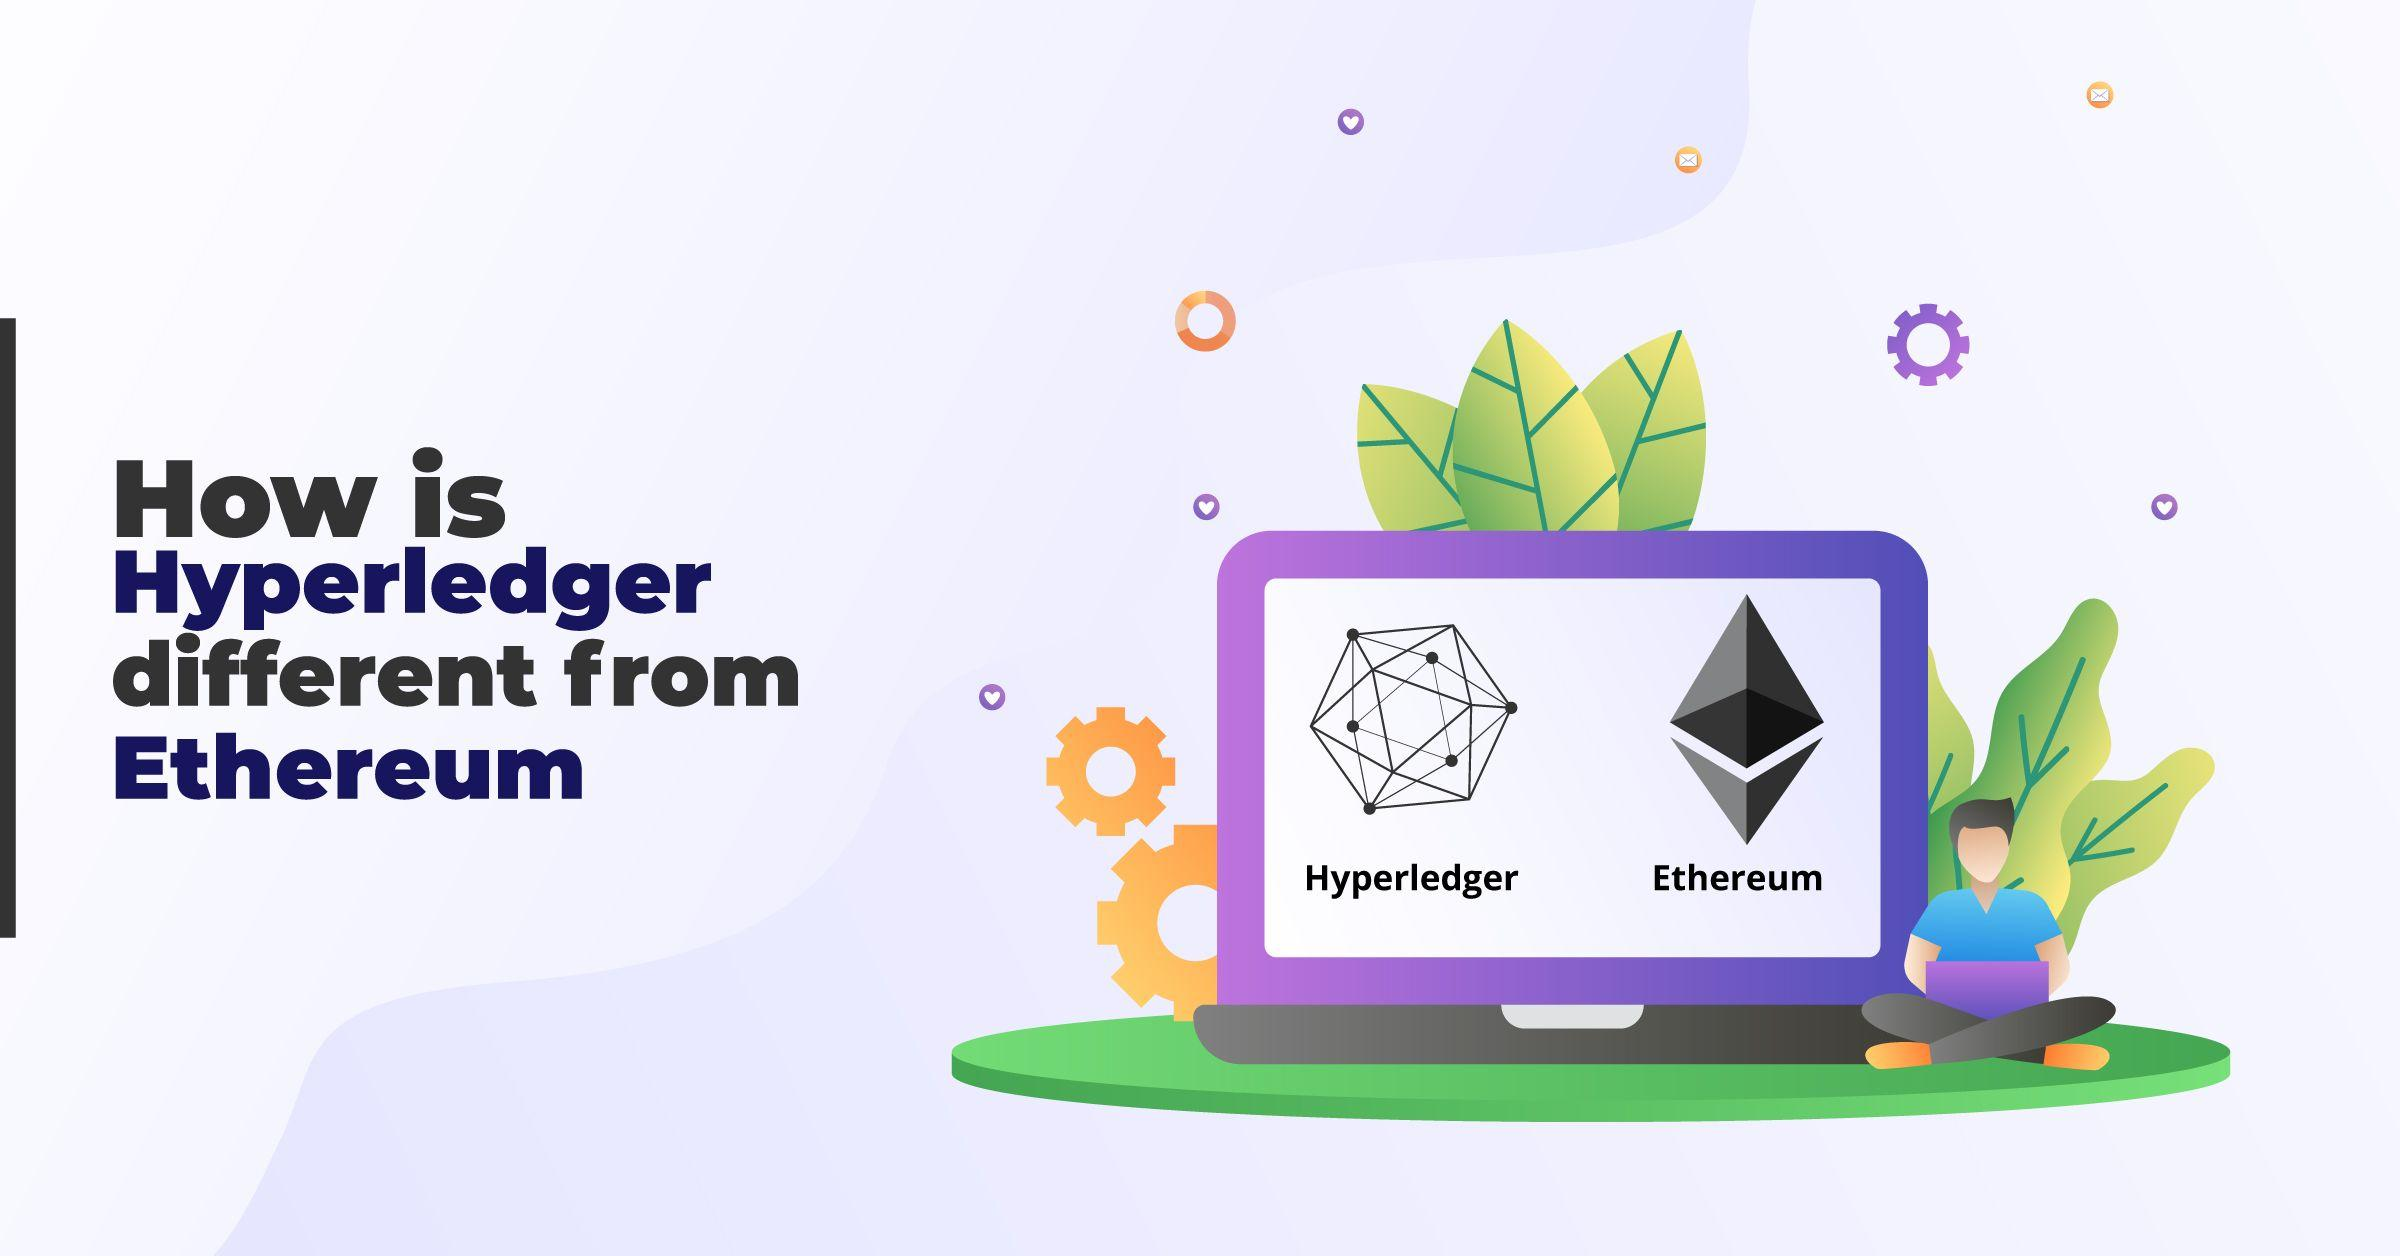 How is Hyperledger Different from Ethereum?